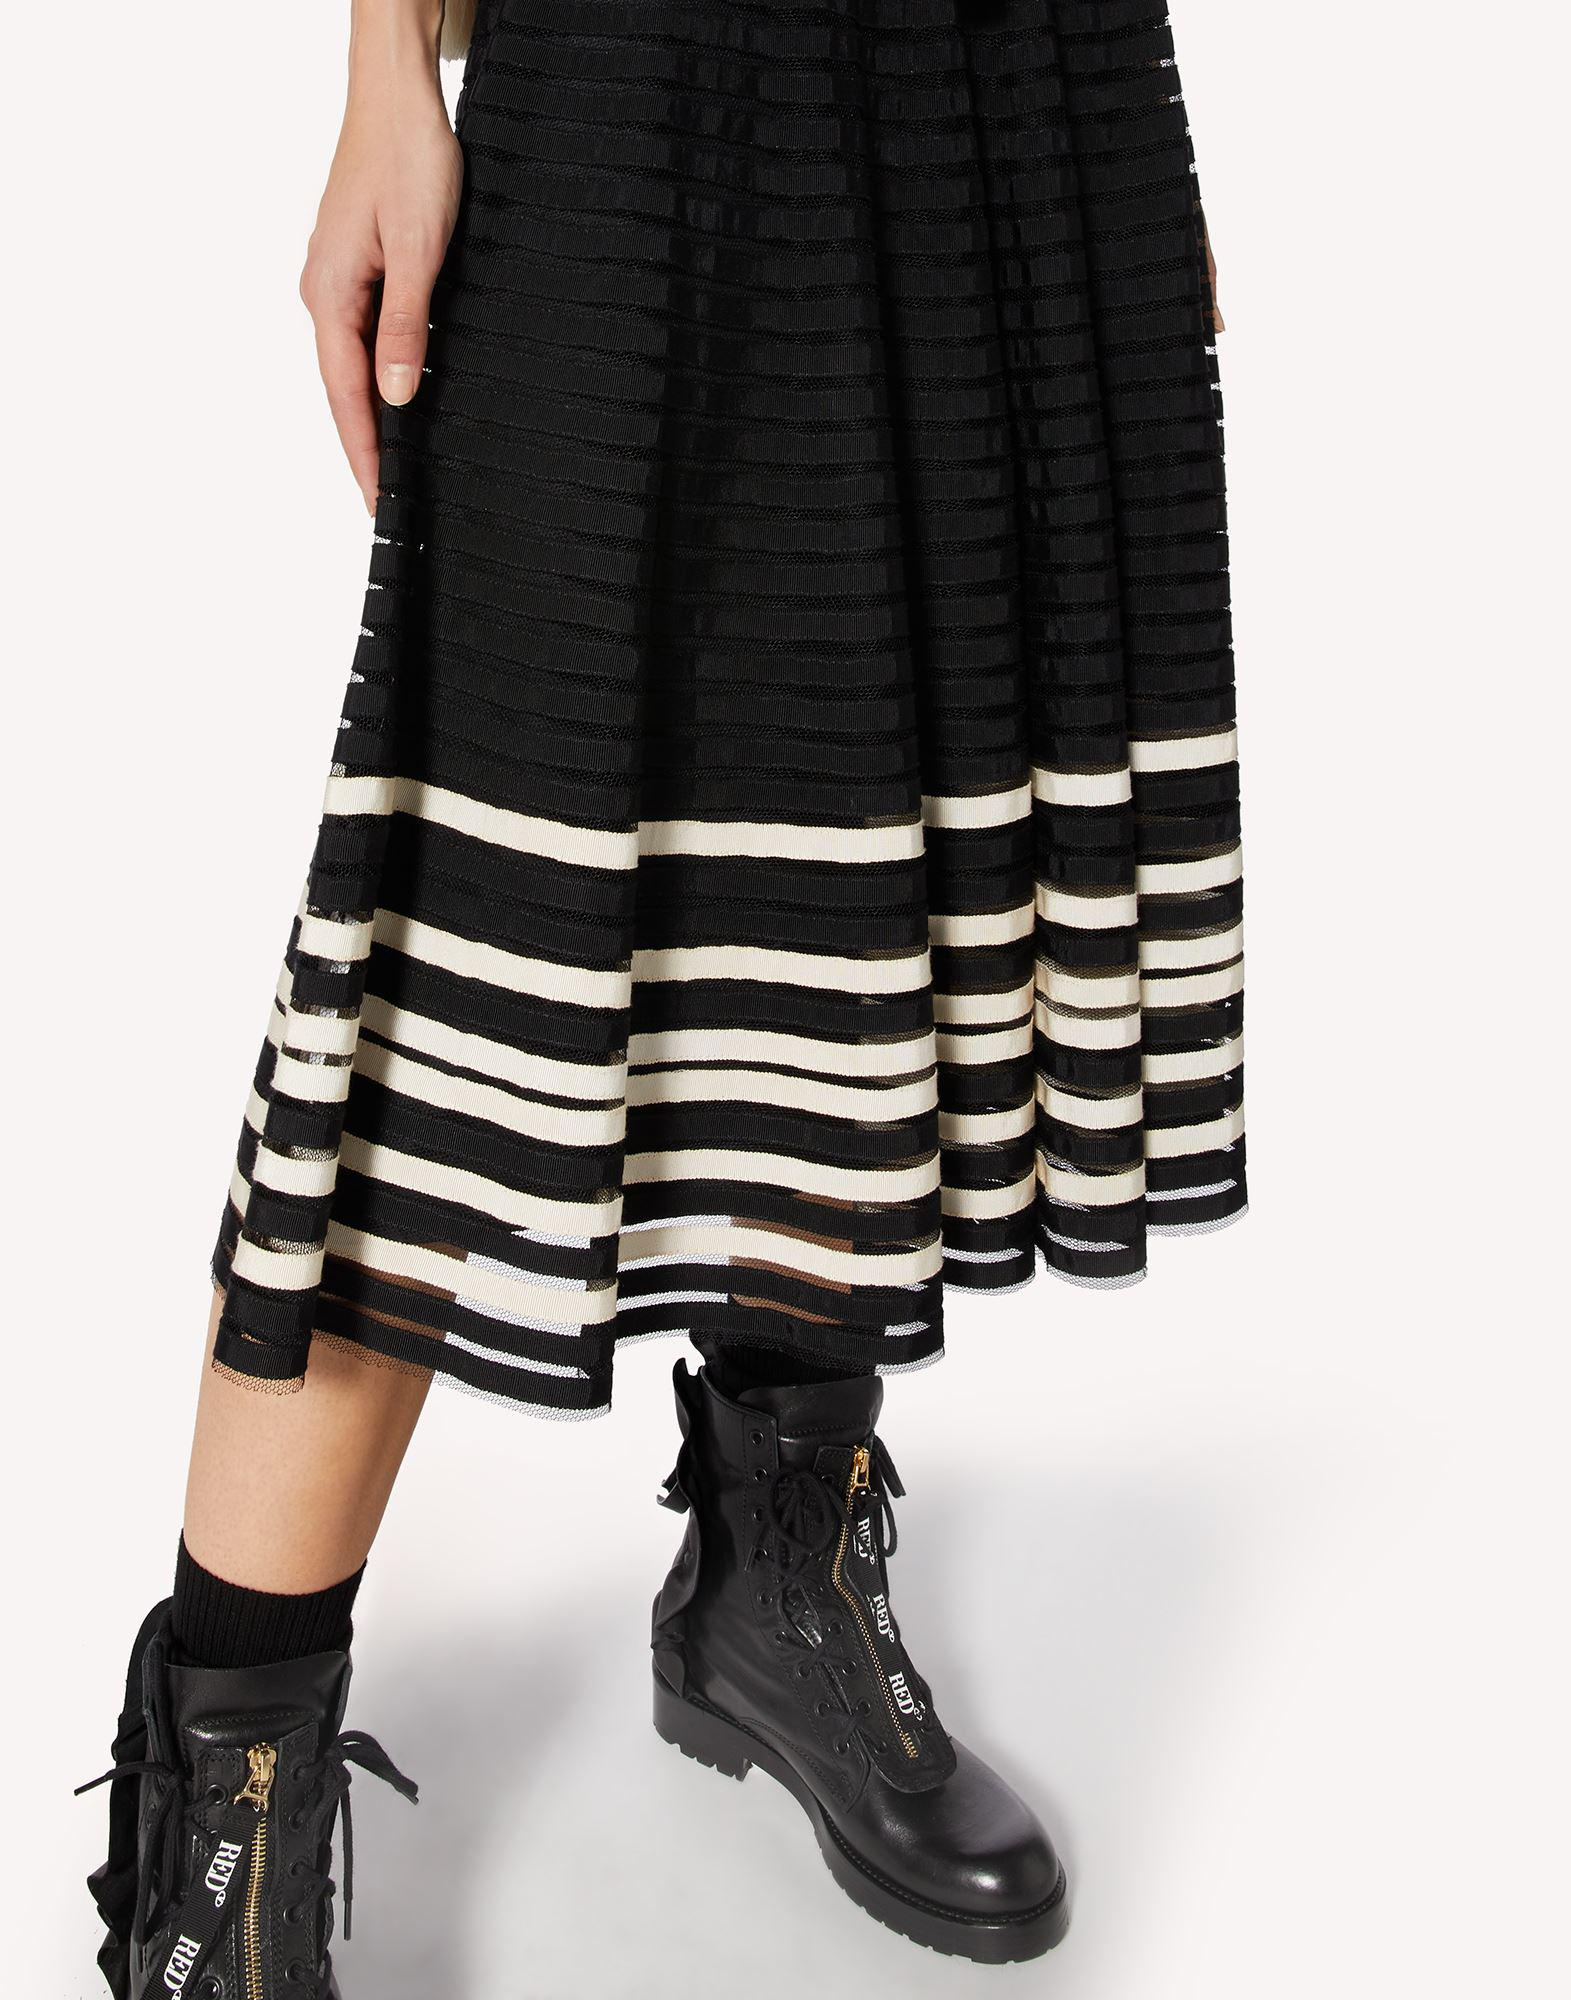 POINT D'ESPRIT TULLE SKIRT WITH GROSGRAIN RIBBONS 3